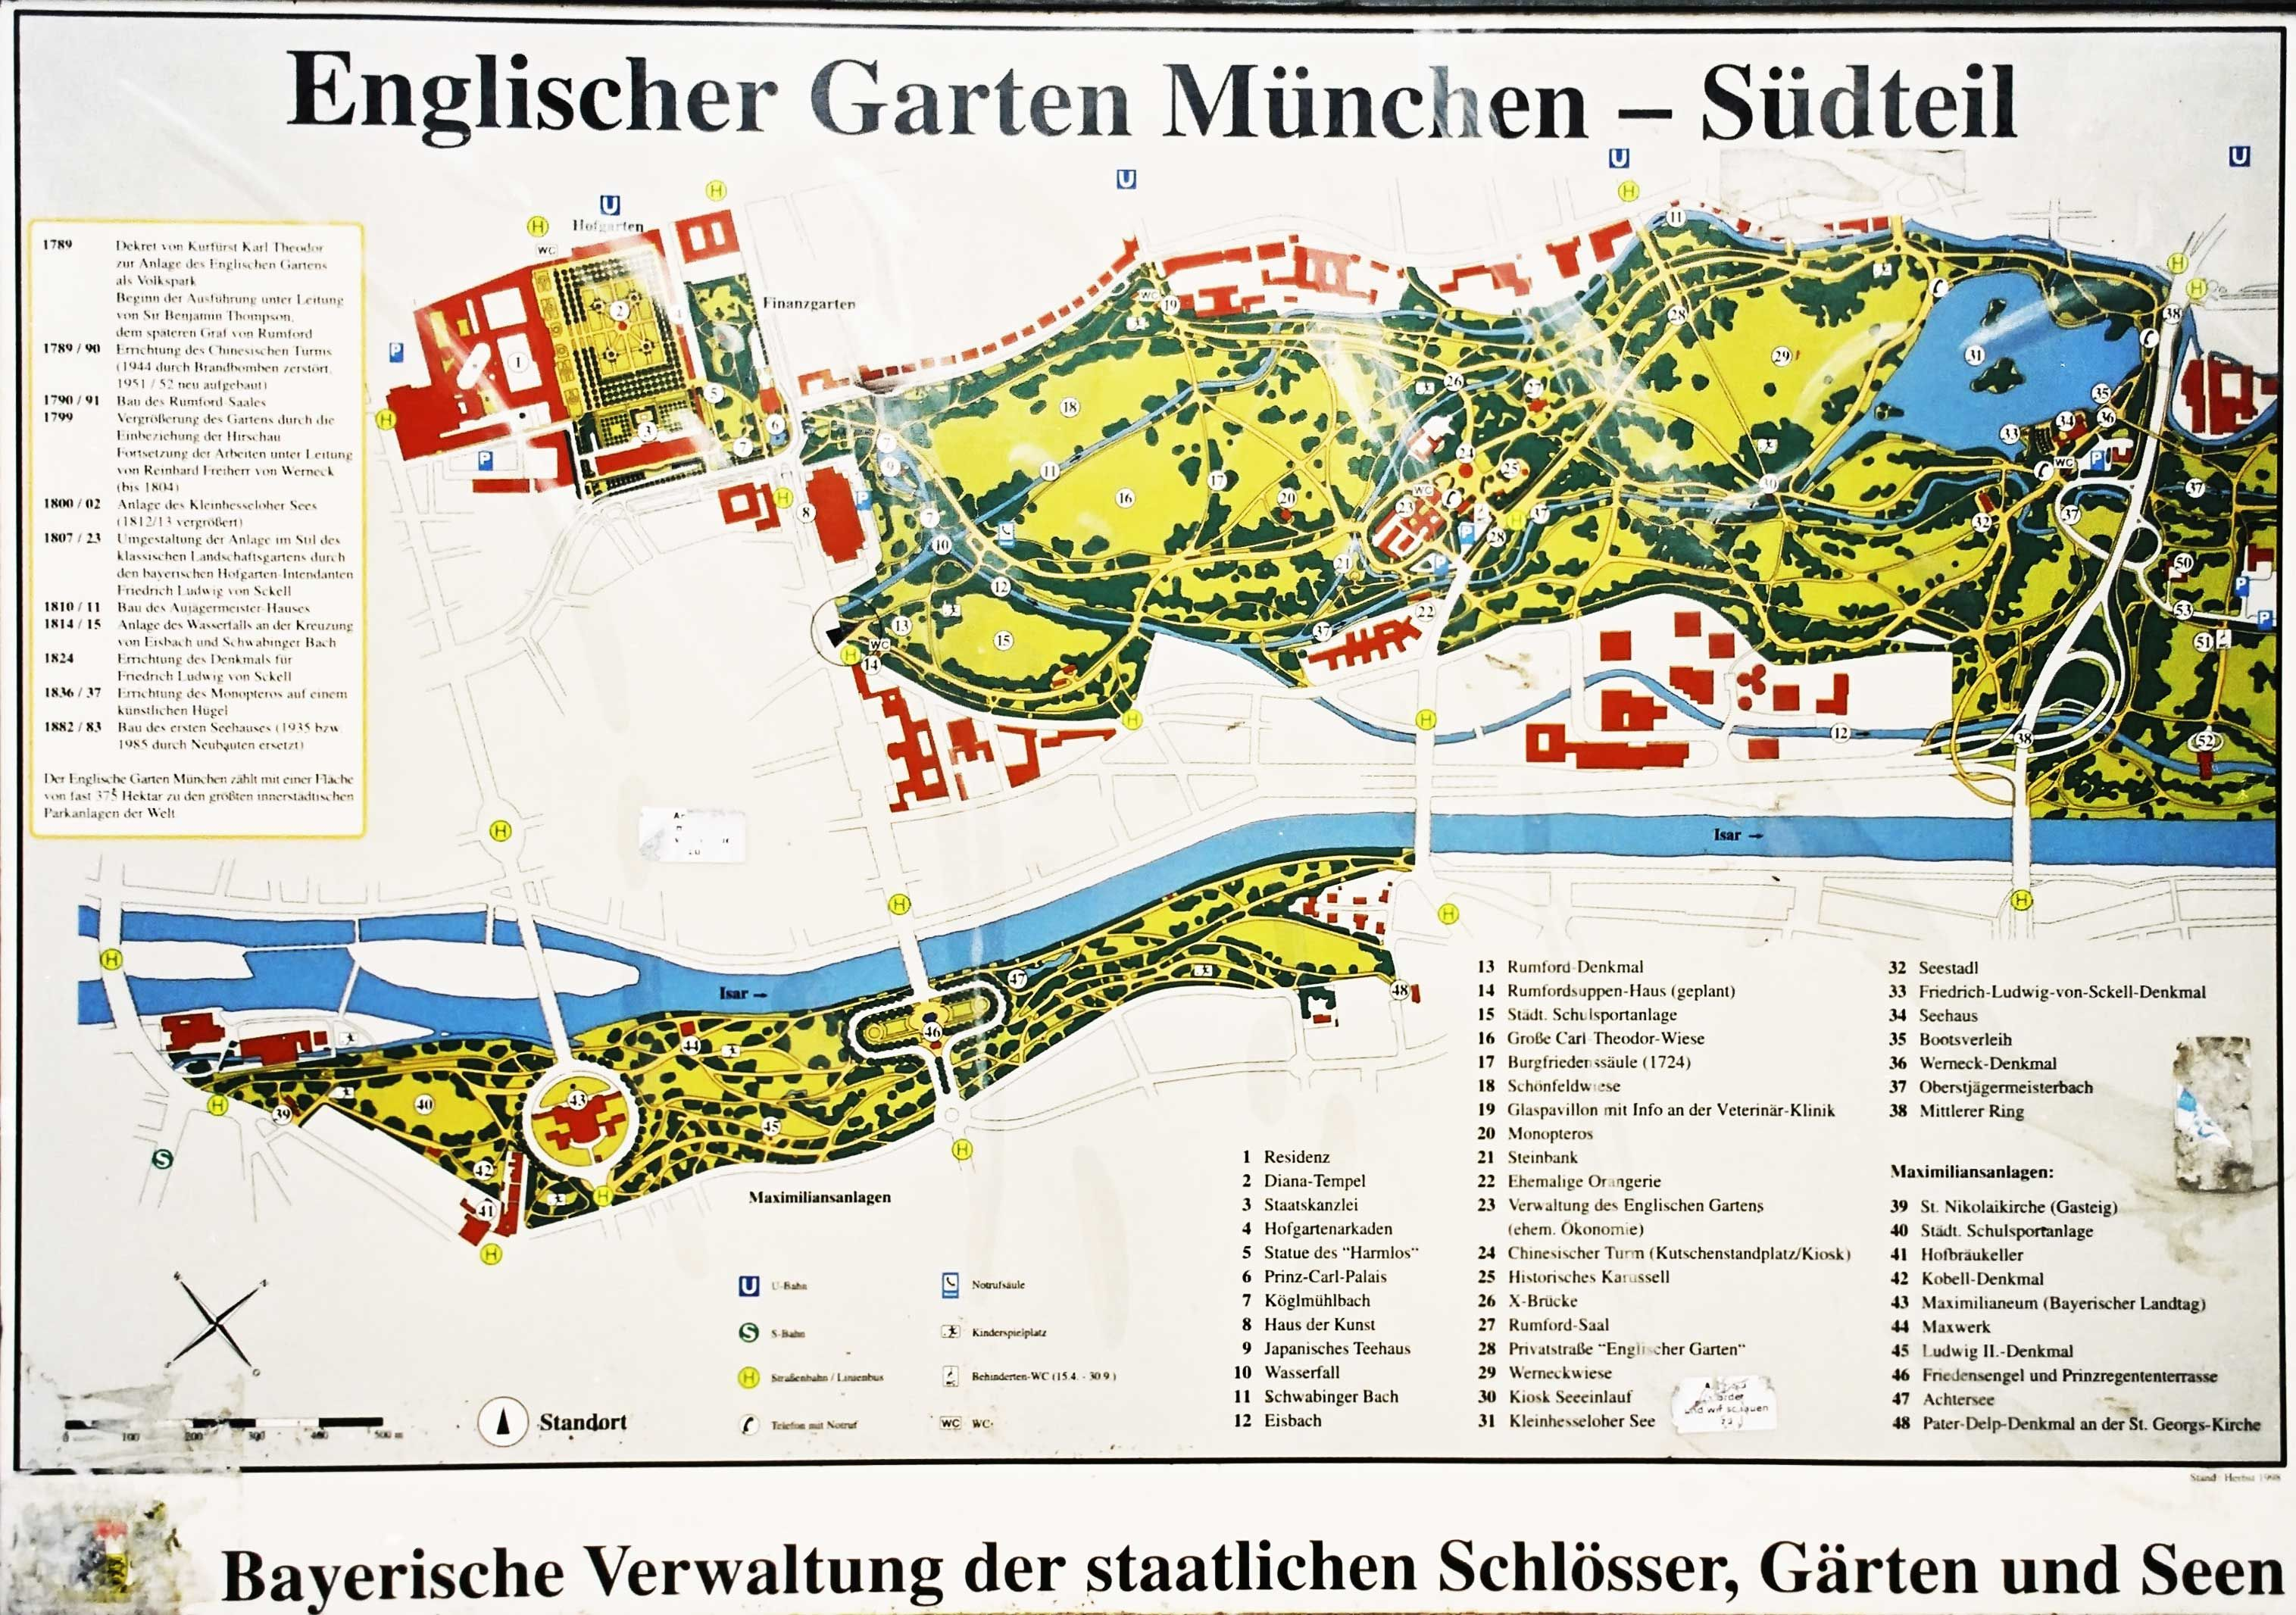 Google Image Result For Http Upload Wikimedia Org Wikipedia Commons 0 0b M 25c3 25bcnchen Englisch Englischer Garten Munchen Englischer Garten Garten Munchen